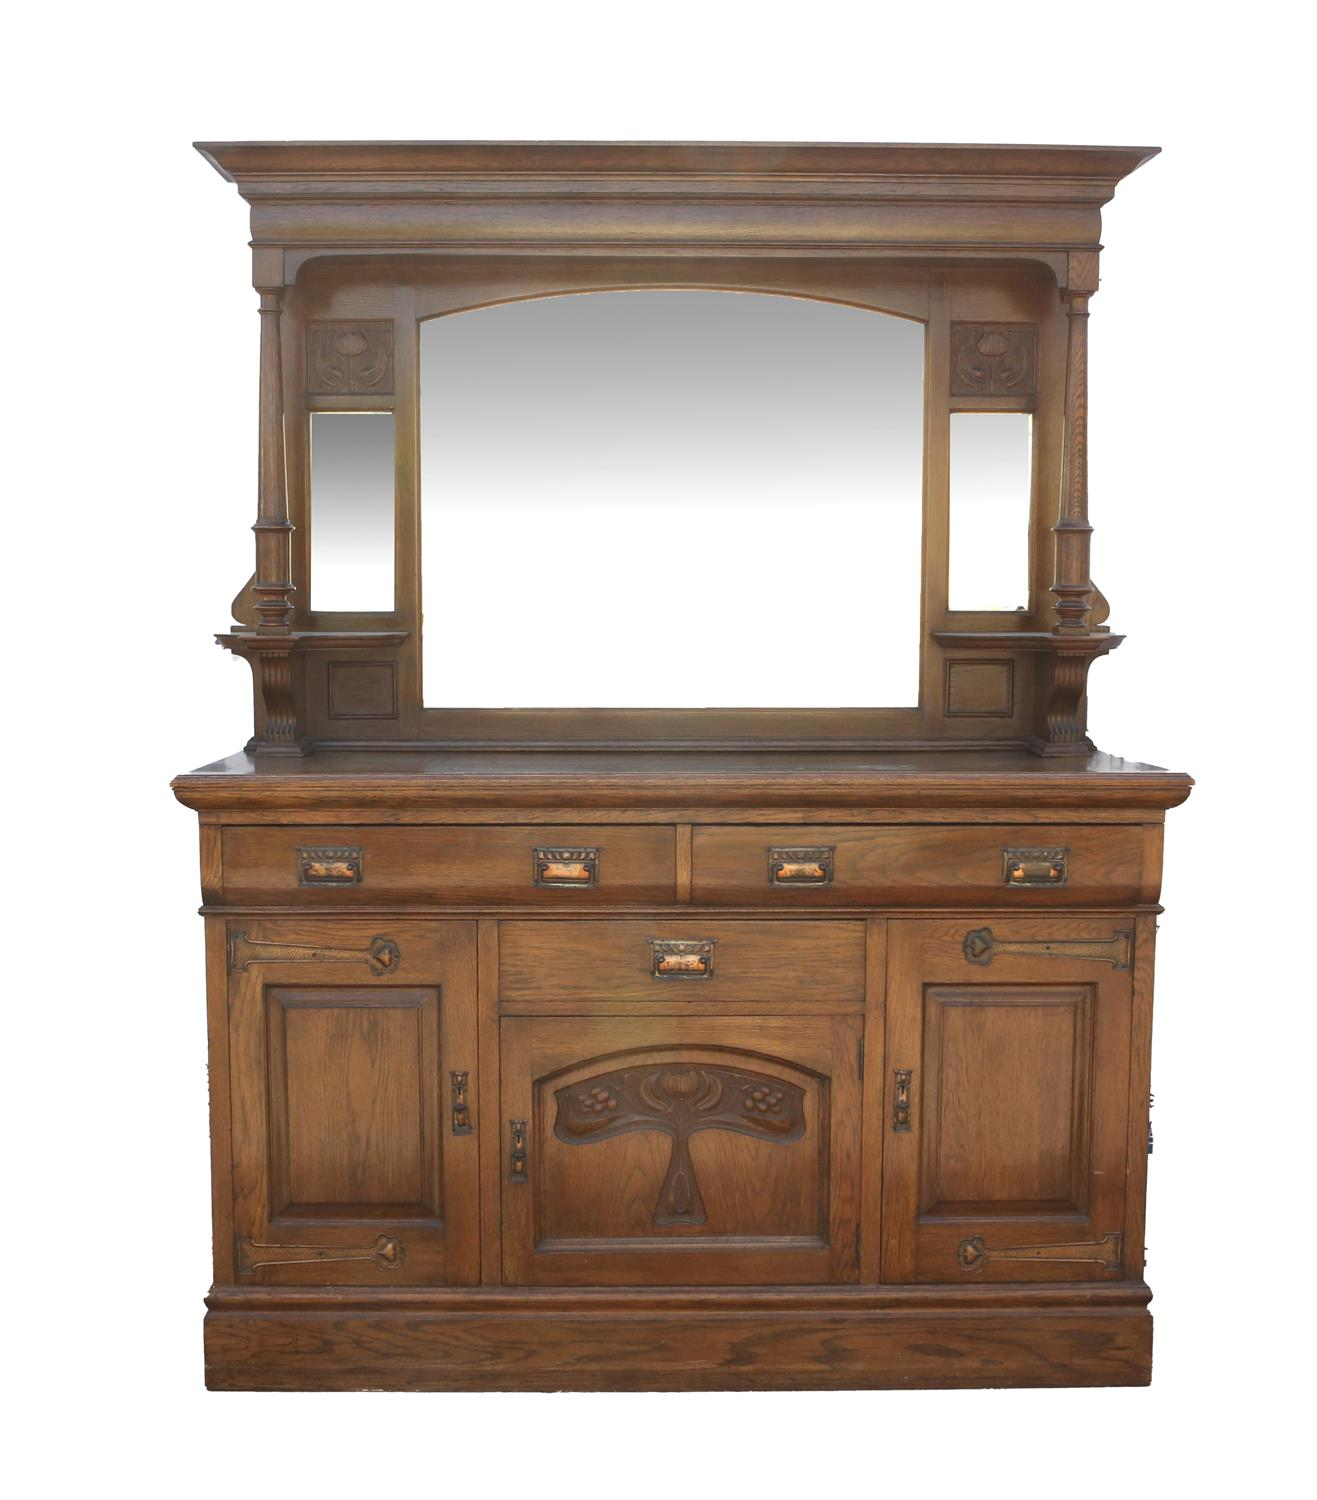 Art Nouveau mirrored back oak sideboard, with bevelled glass plates flanked by floral carved panels